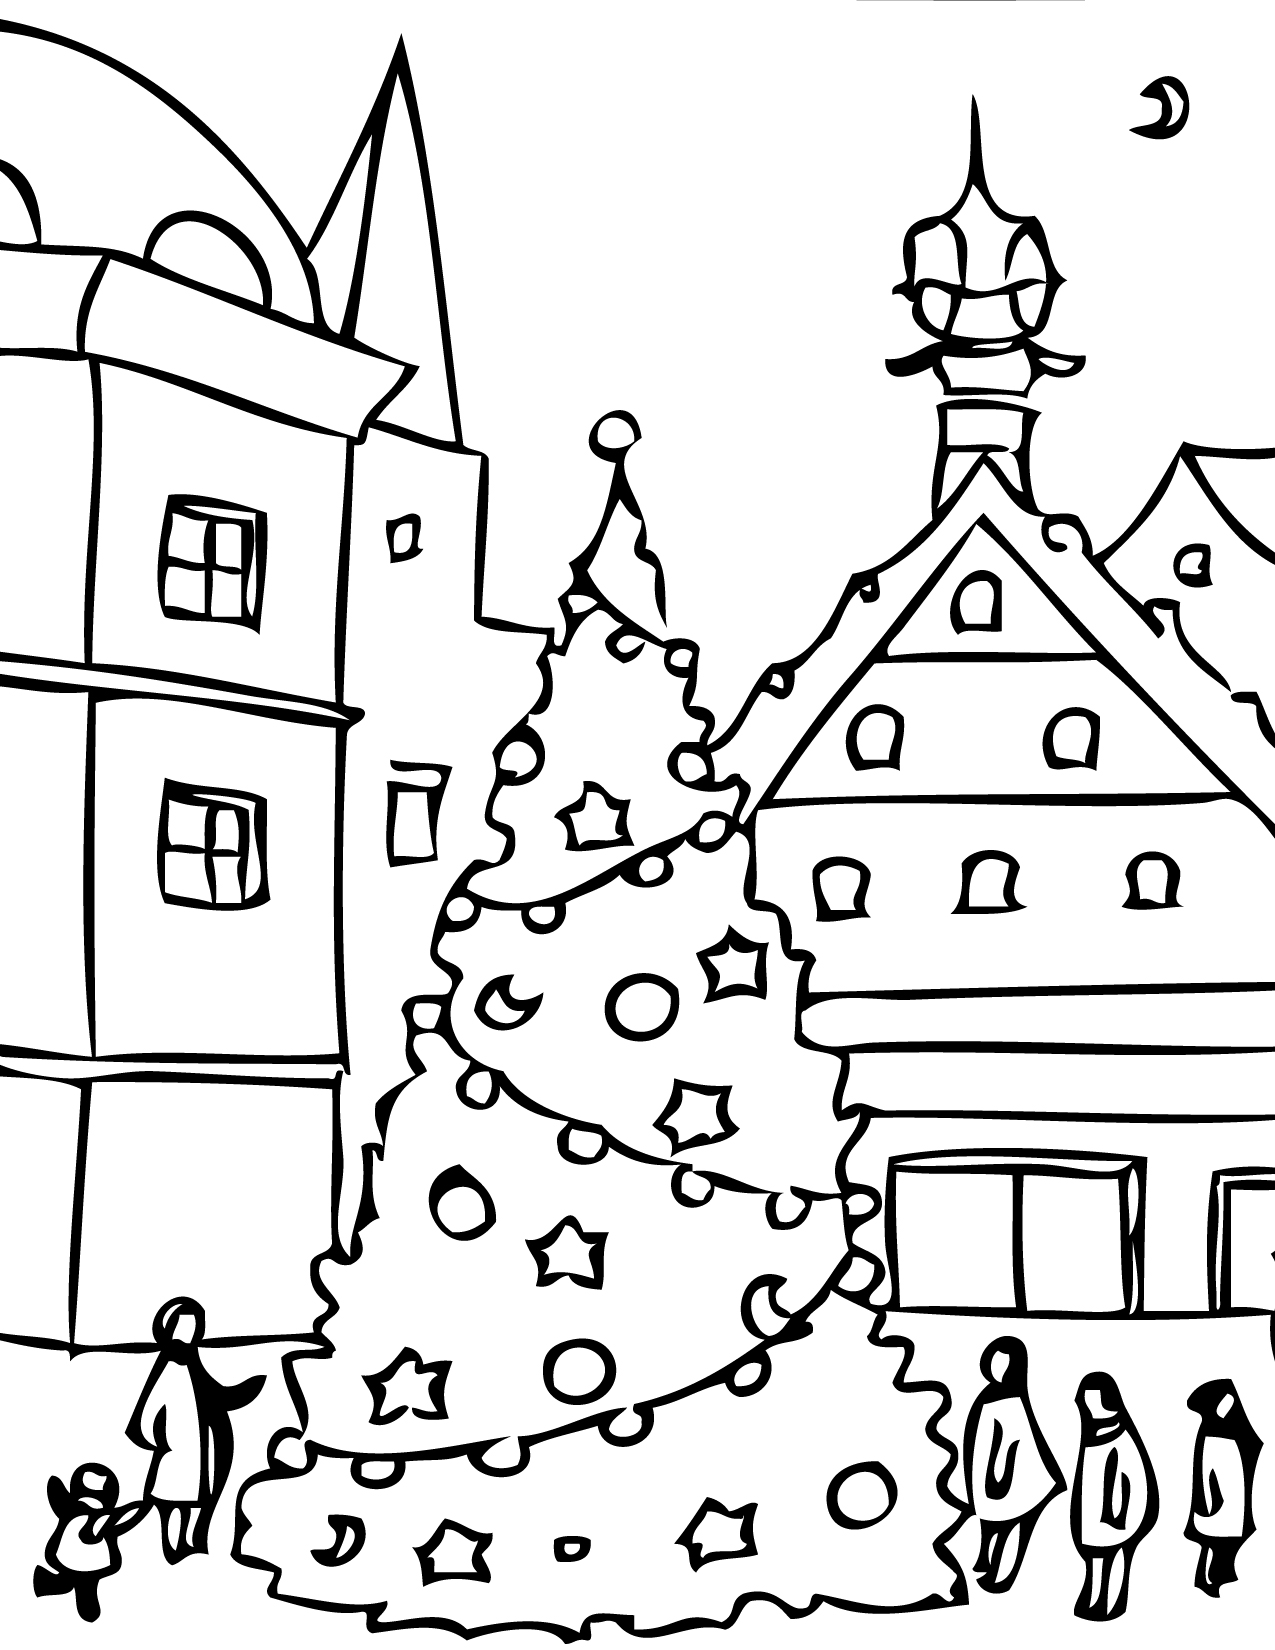 coloring pages christams - photo#24